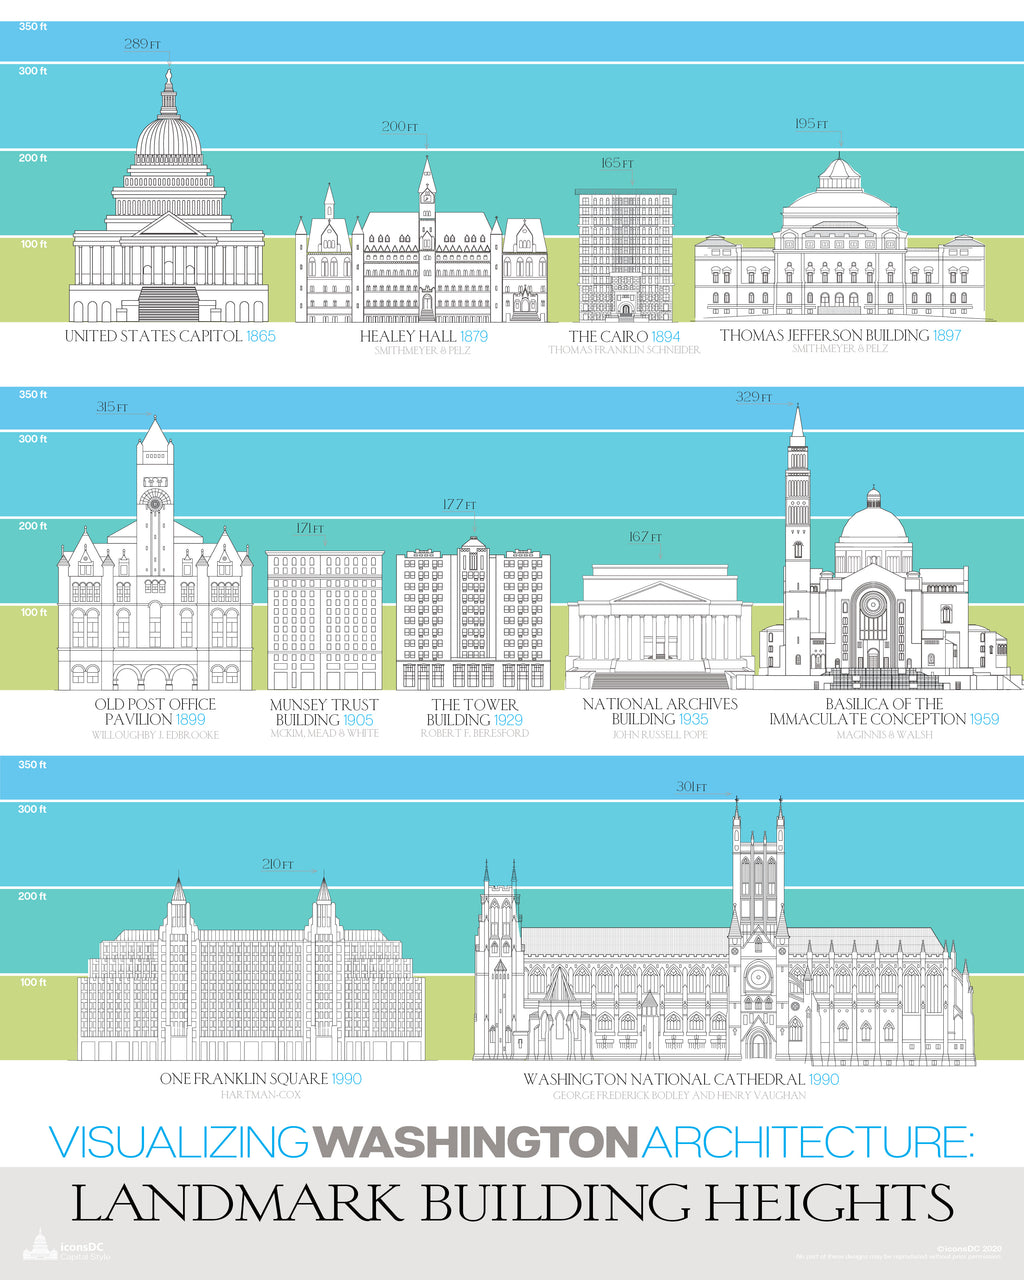 Landmark Building Heights of Washington